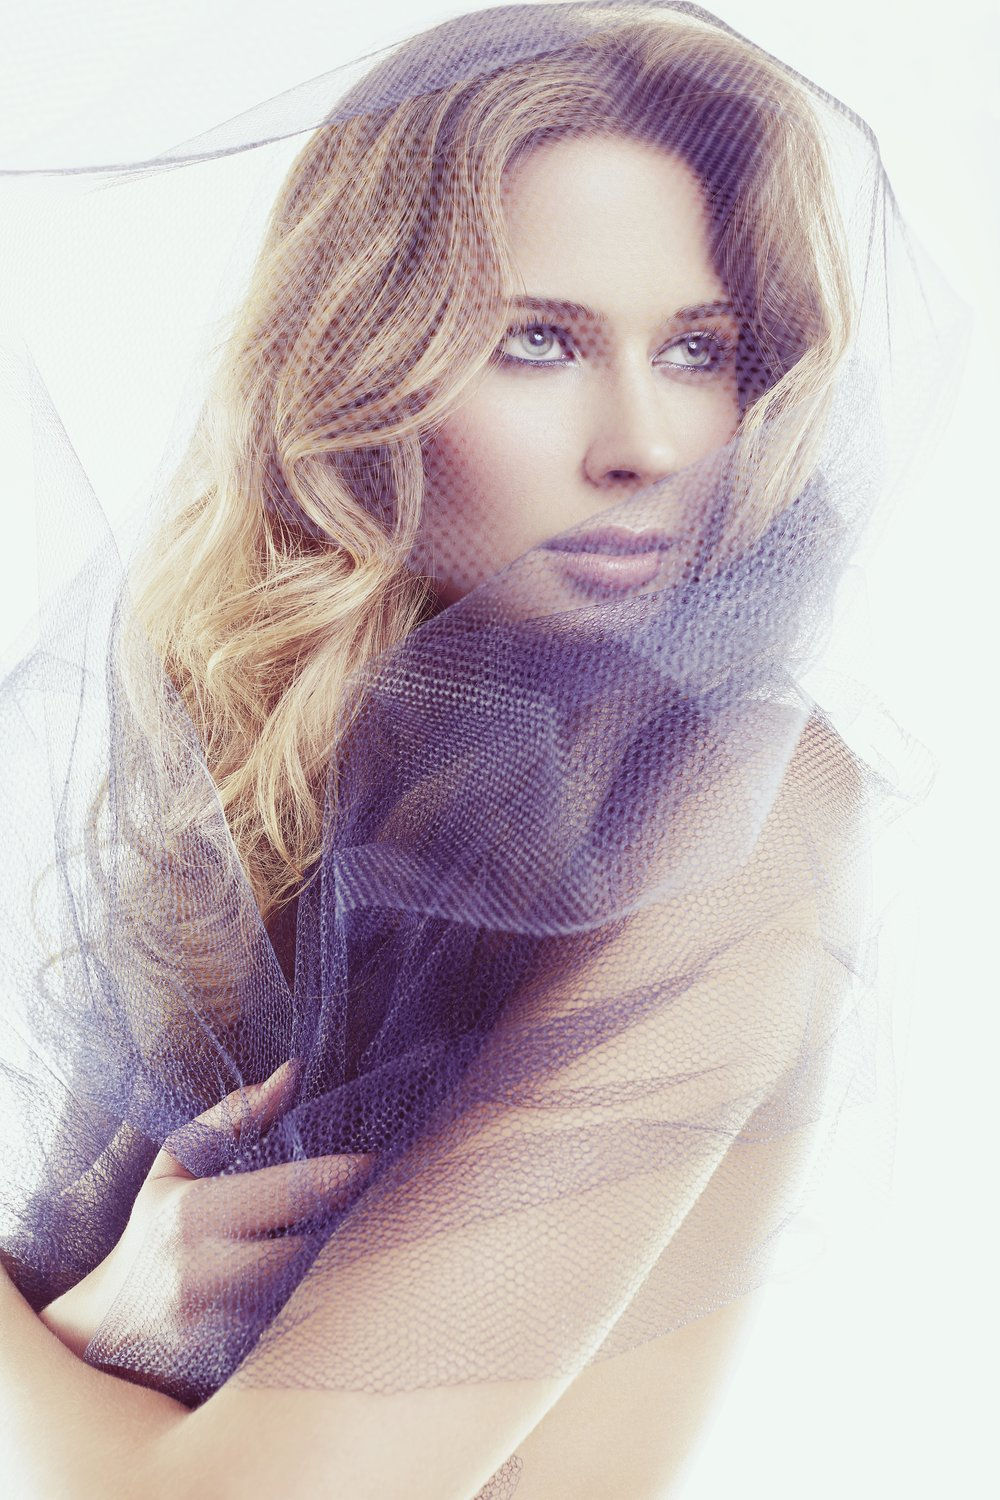 Portrait of dirty blond woman with see through lace mesh scarf - Mark DeLong: Fashion Gallery